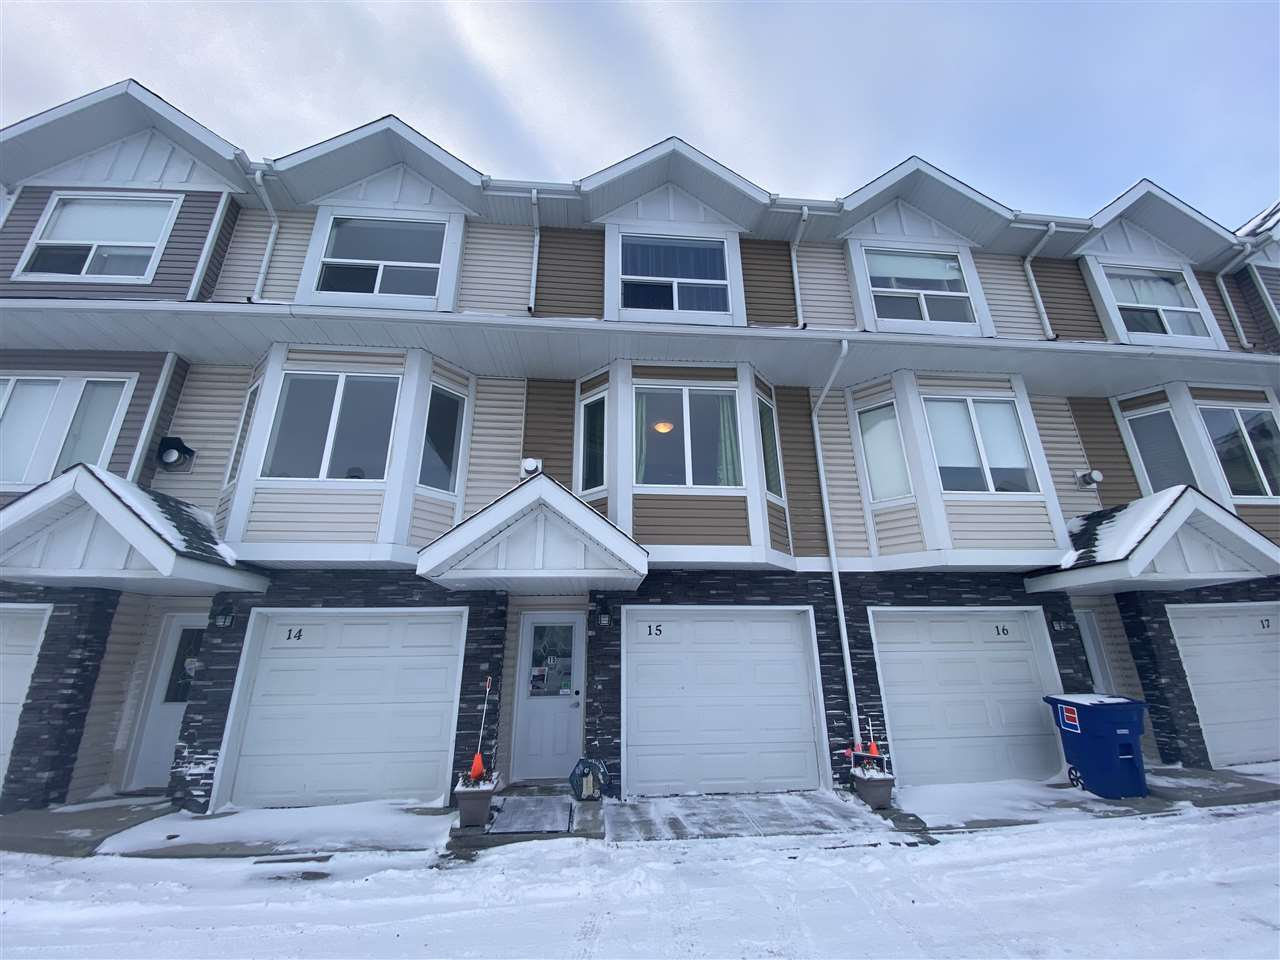 FEATURED LISTING: 15 - 13215 153 Avenue Edmonton